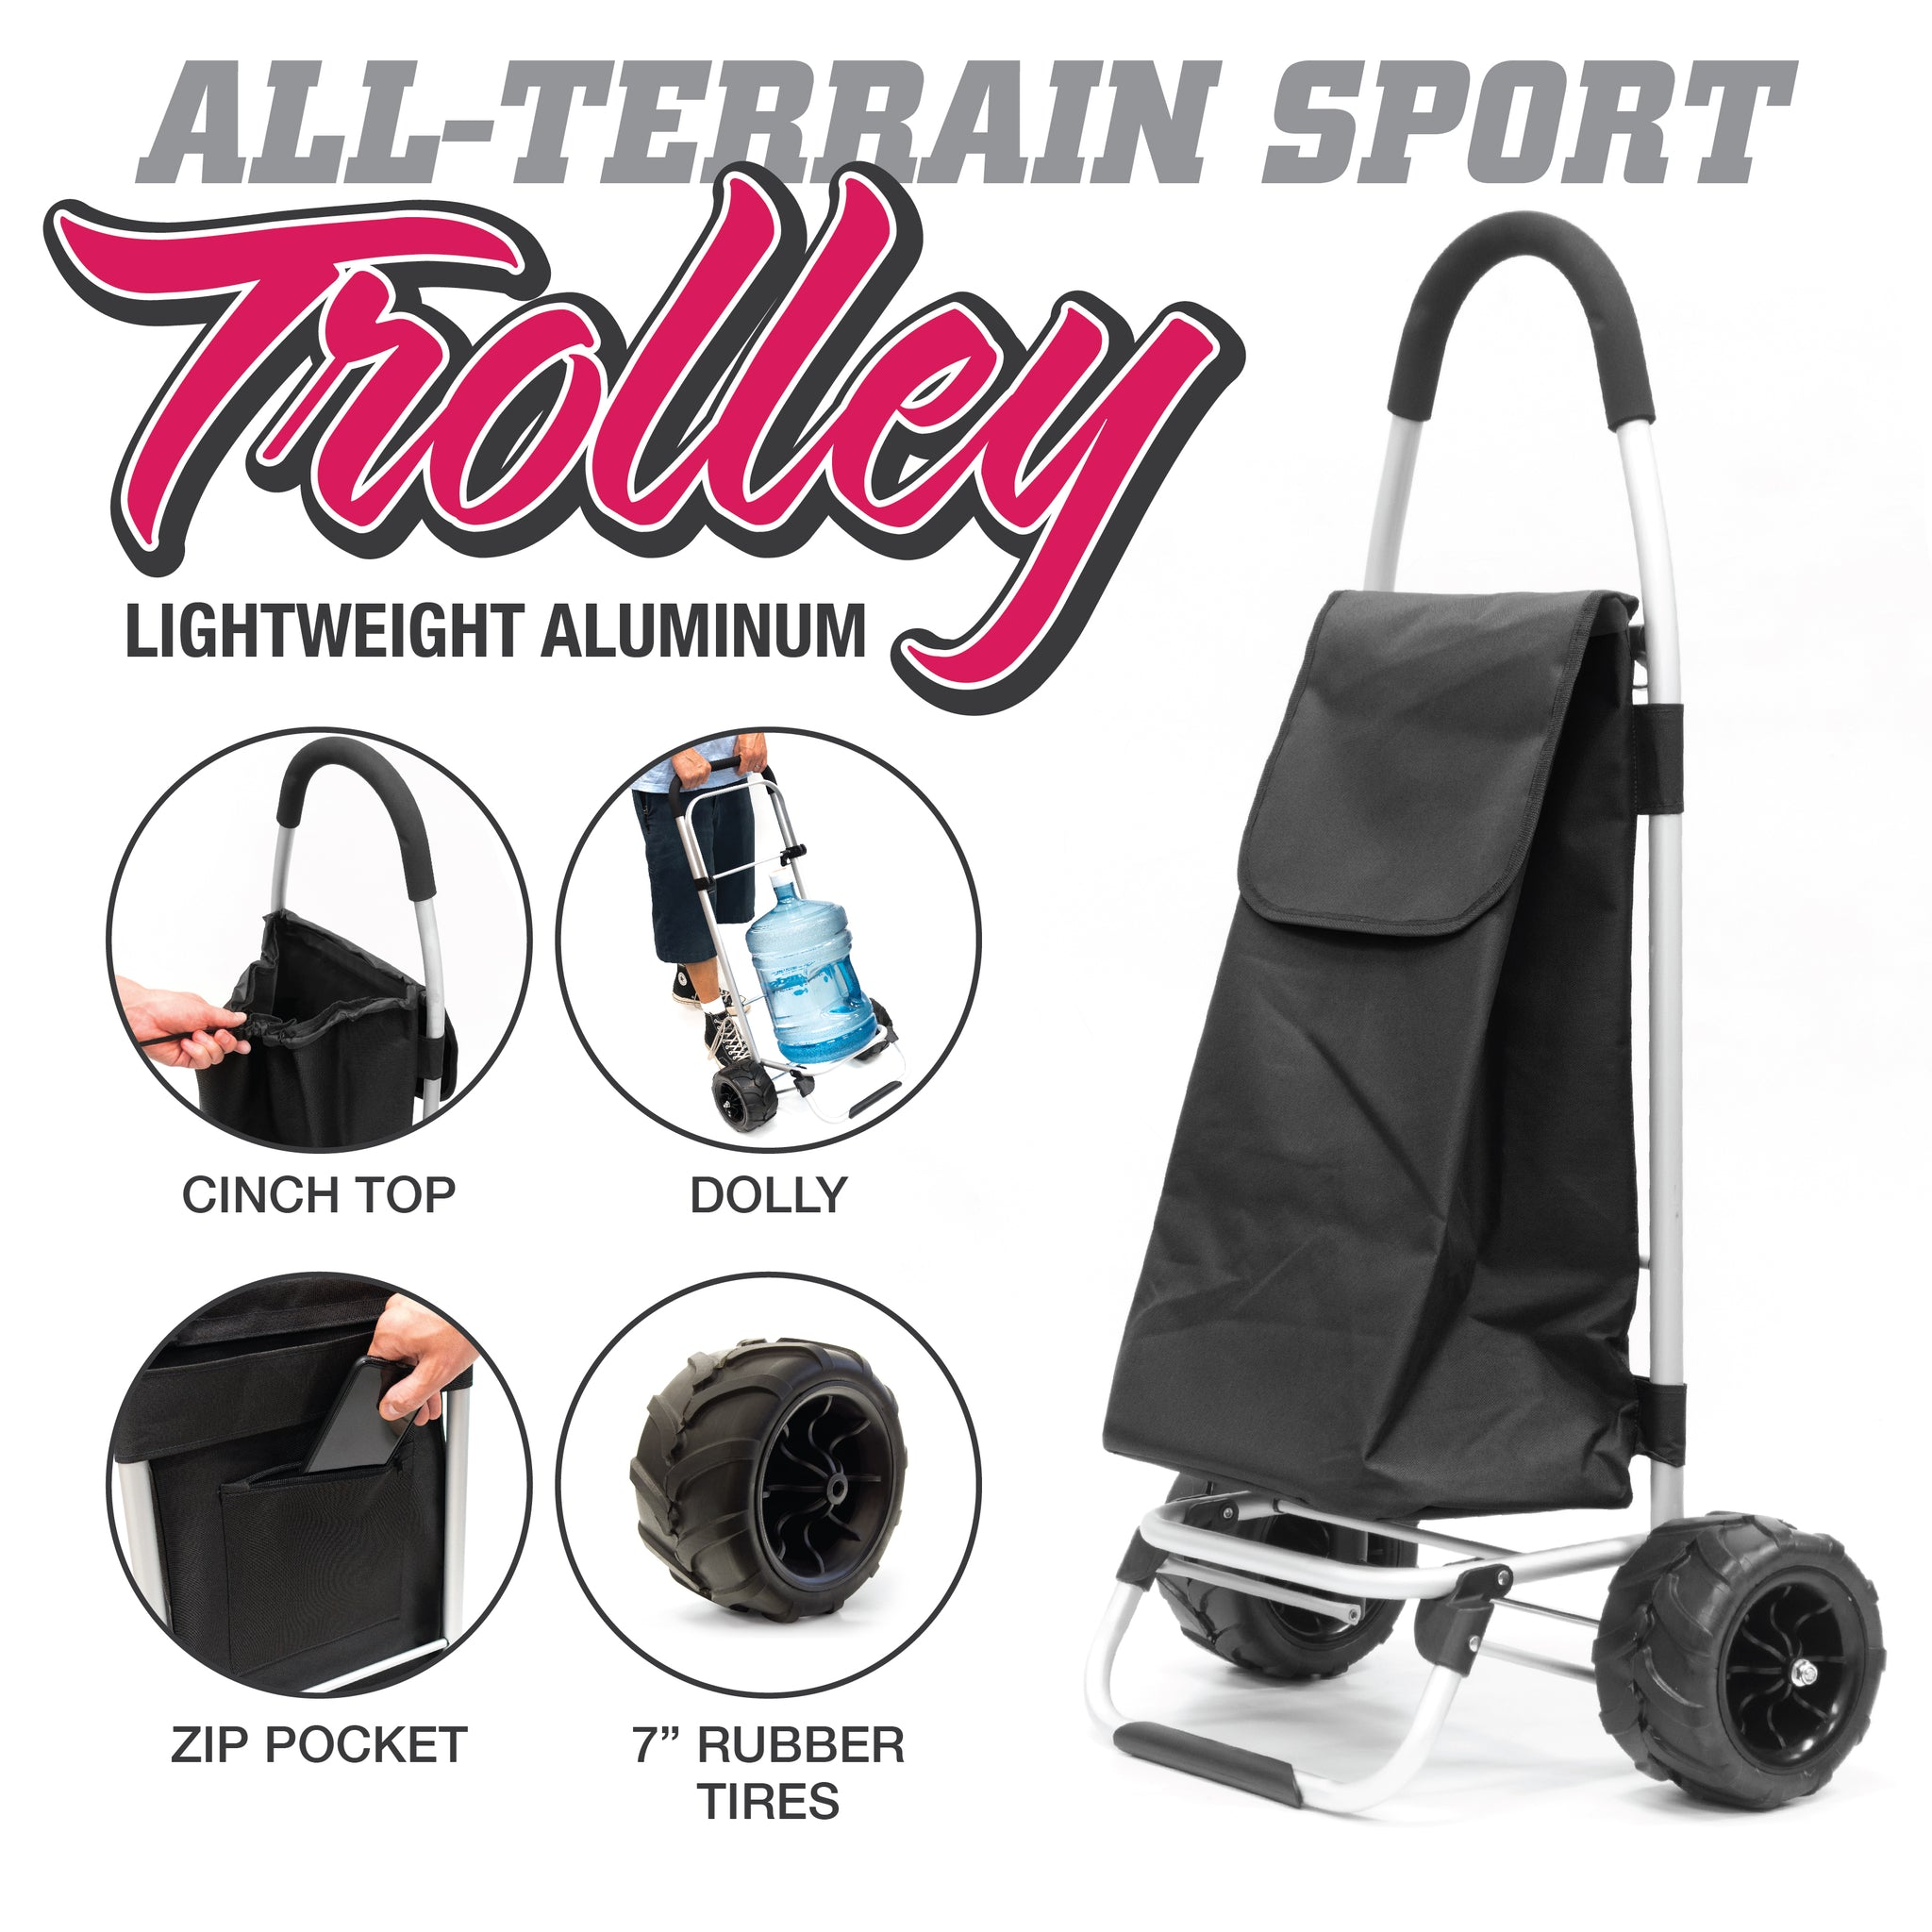 All-Terrain Folding Aluminum Trolley with Removable Cinch-Top Bag Features 890100